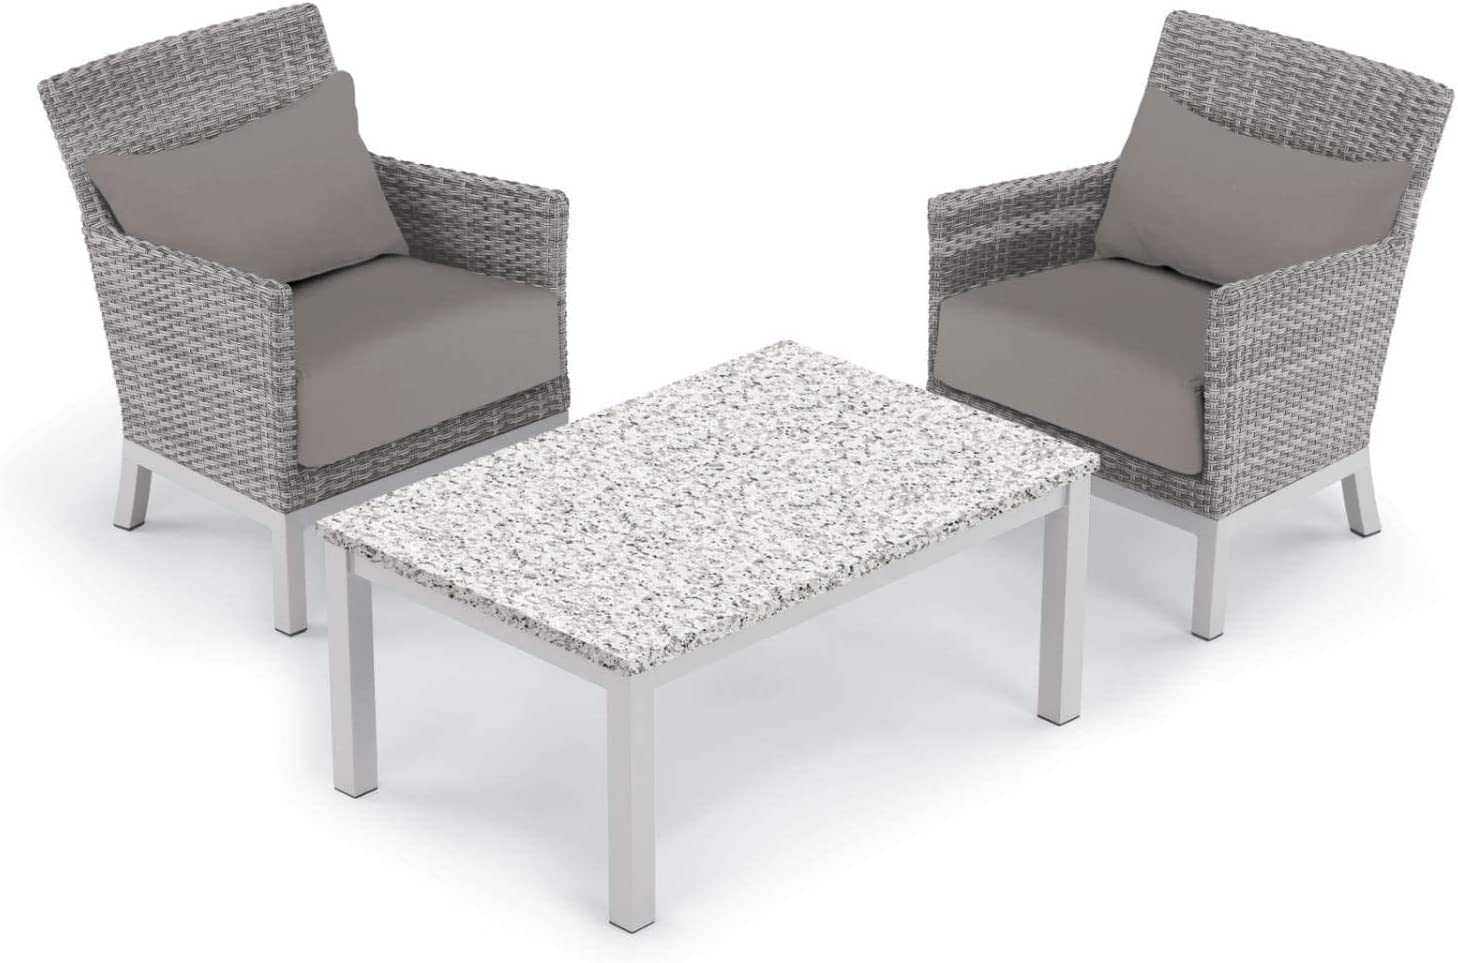 Oxford Garden 5542 Argento & Travira Furniture Set, Powder Coat Flint